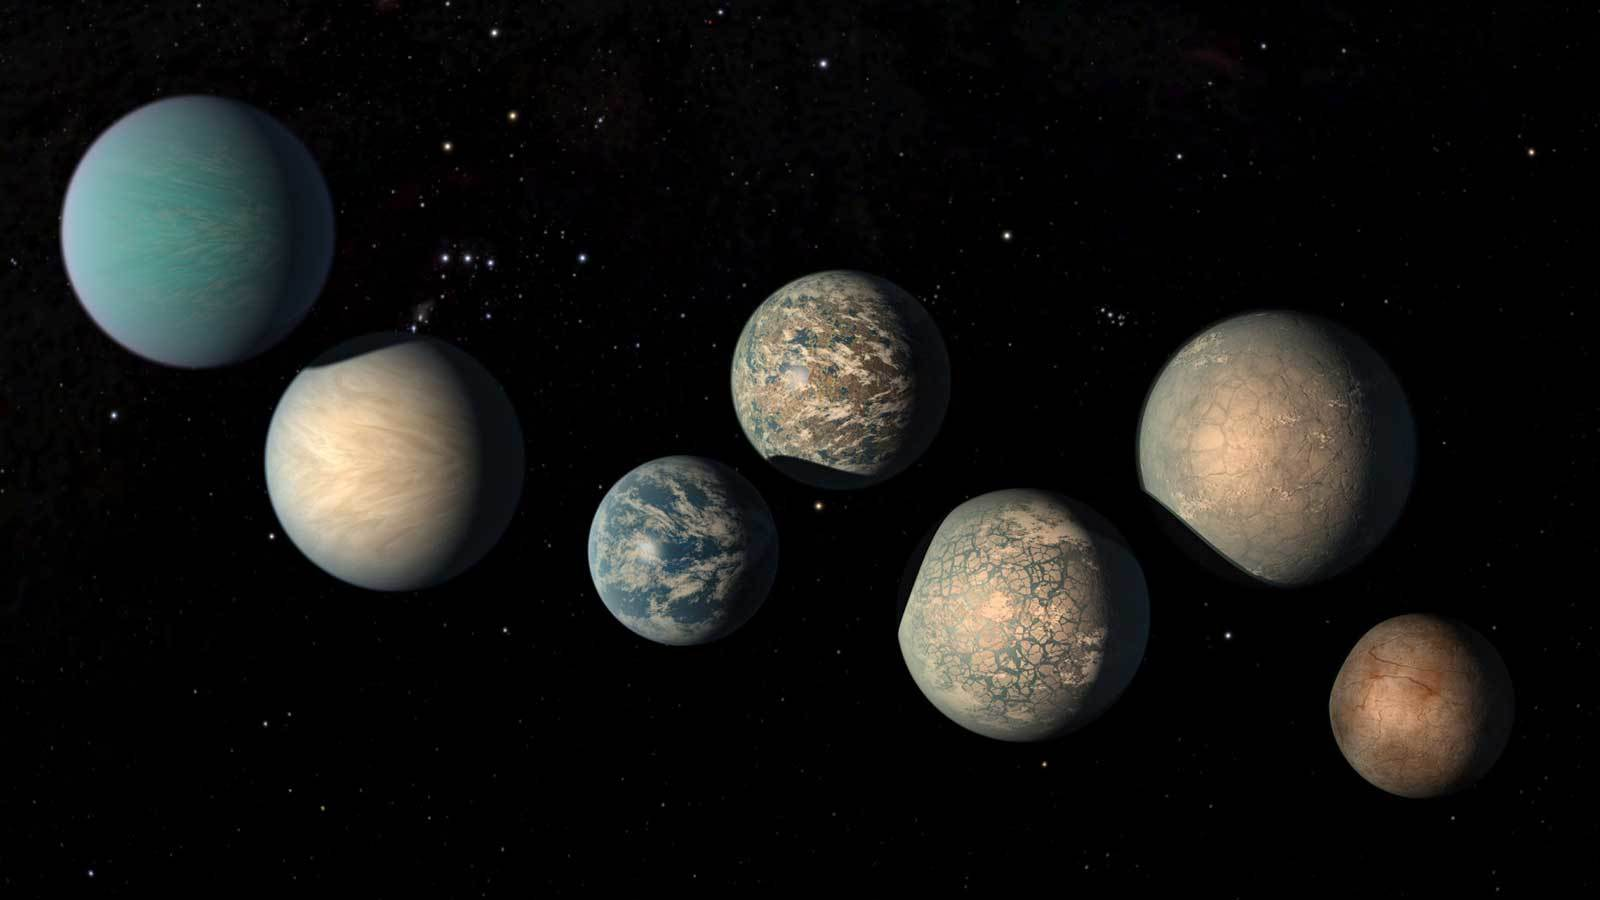 seven earth sized planets are seen in an illustration